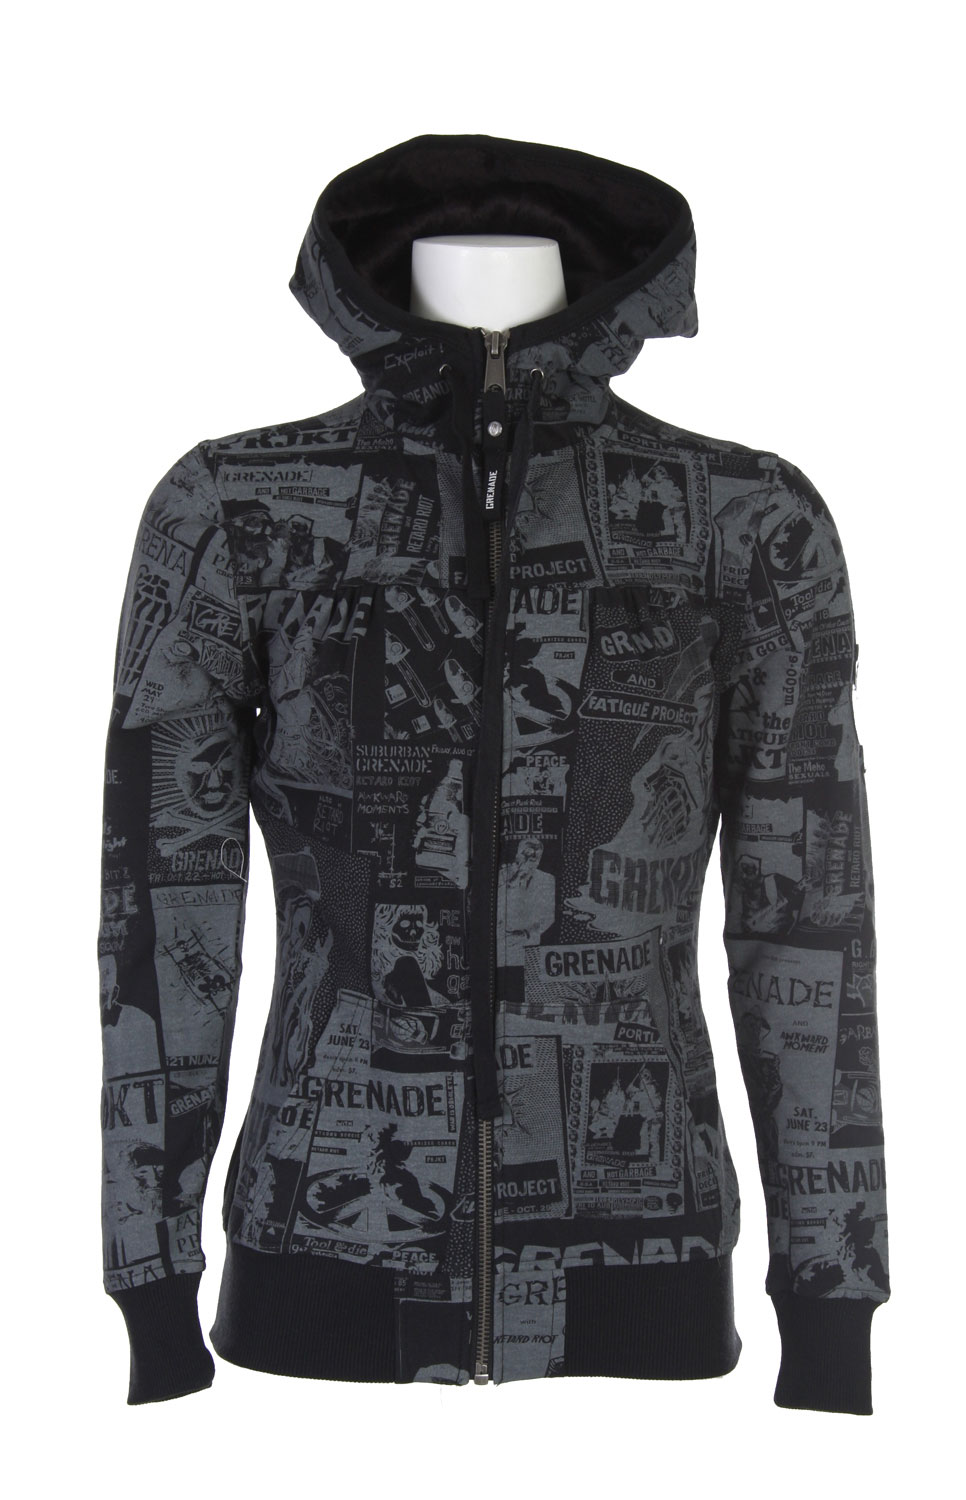 The Grenade Flyer Women's Hoodie - Vergan Fur Lined Hood / Shirred Front / Empire Yoke - $41.95